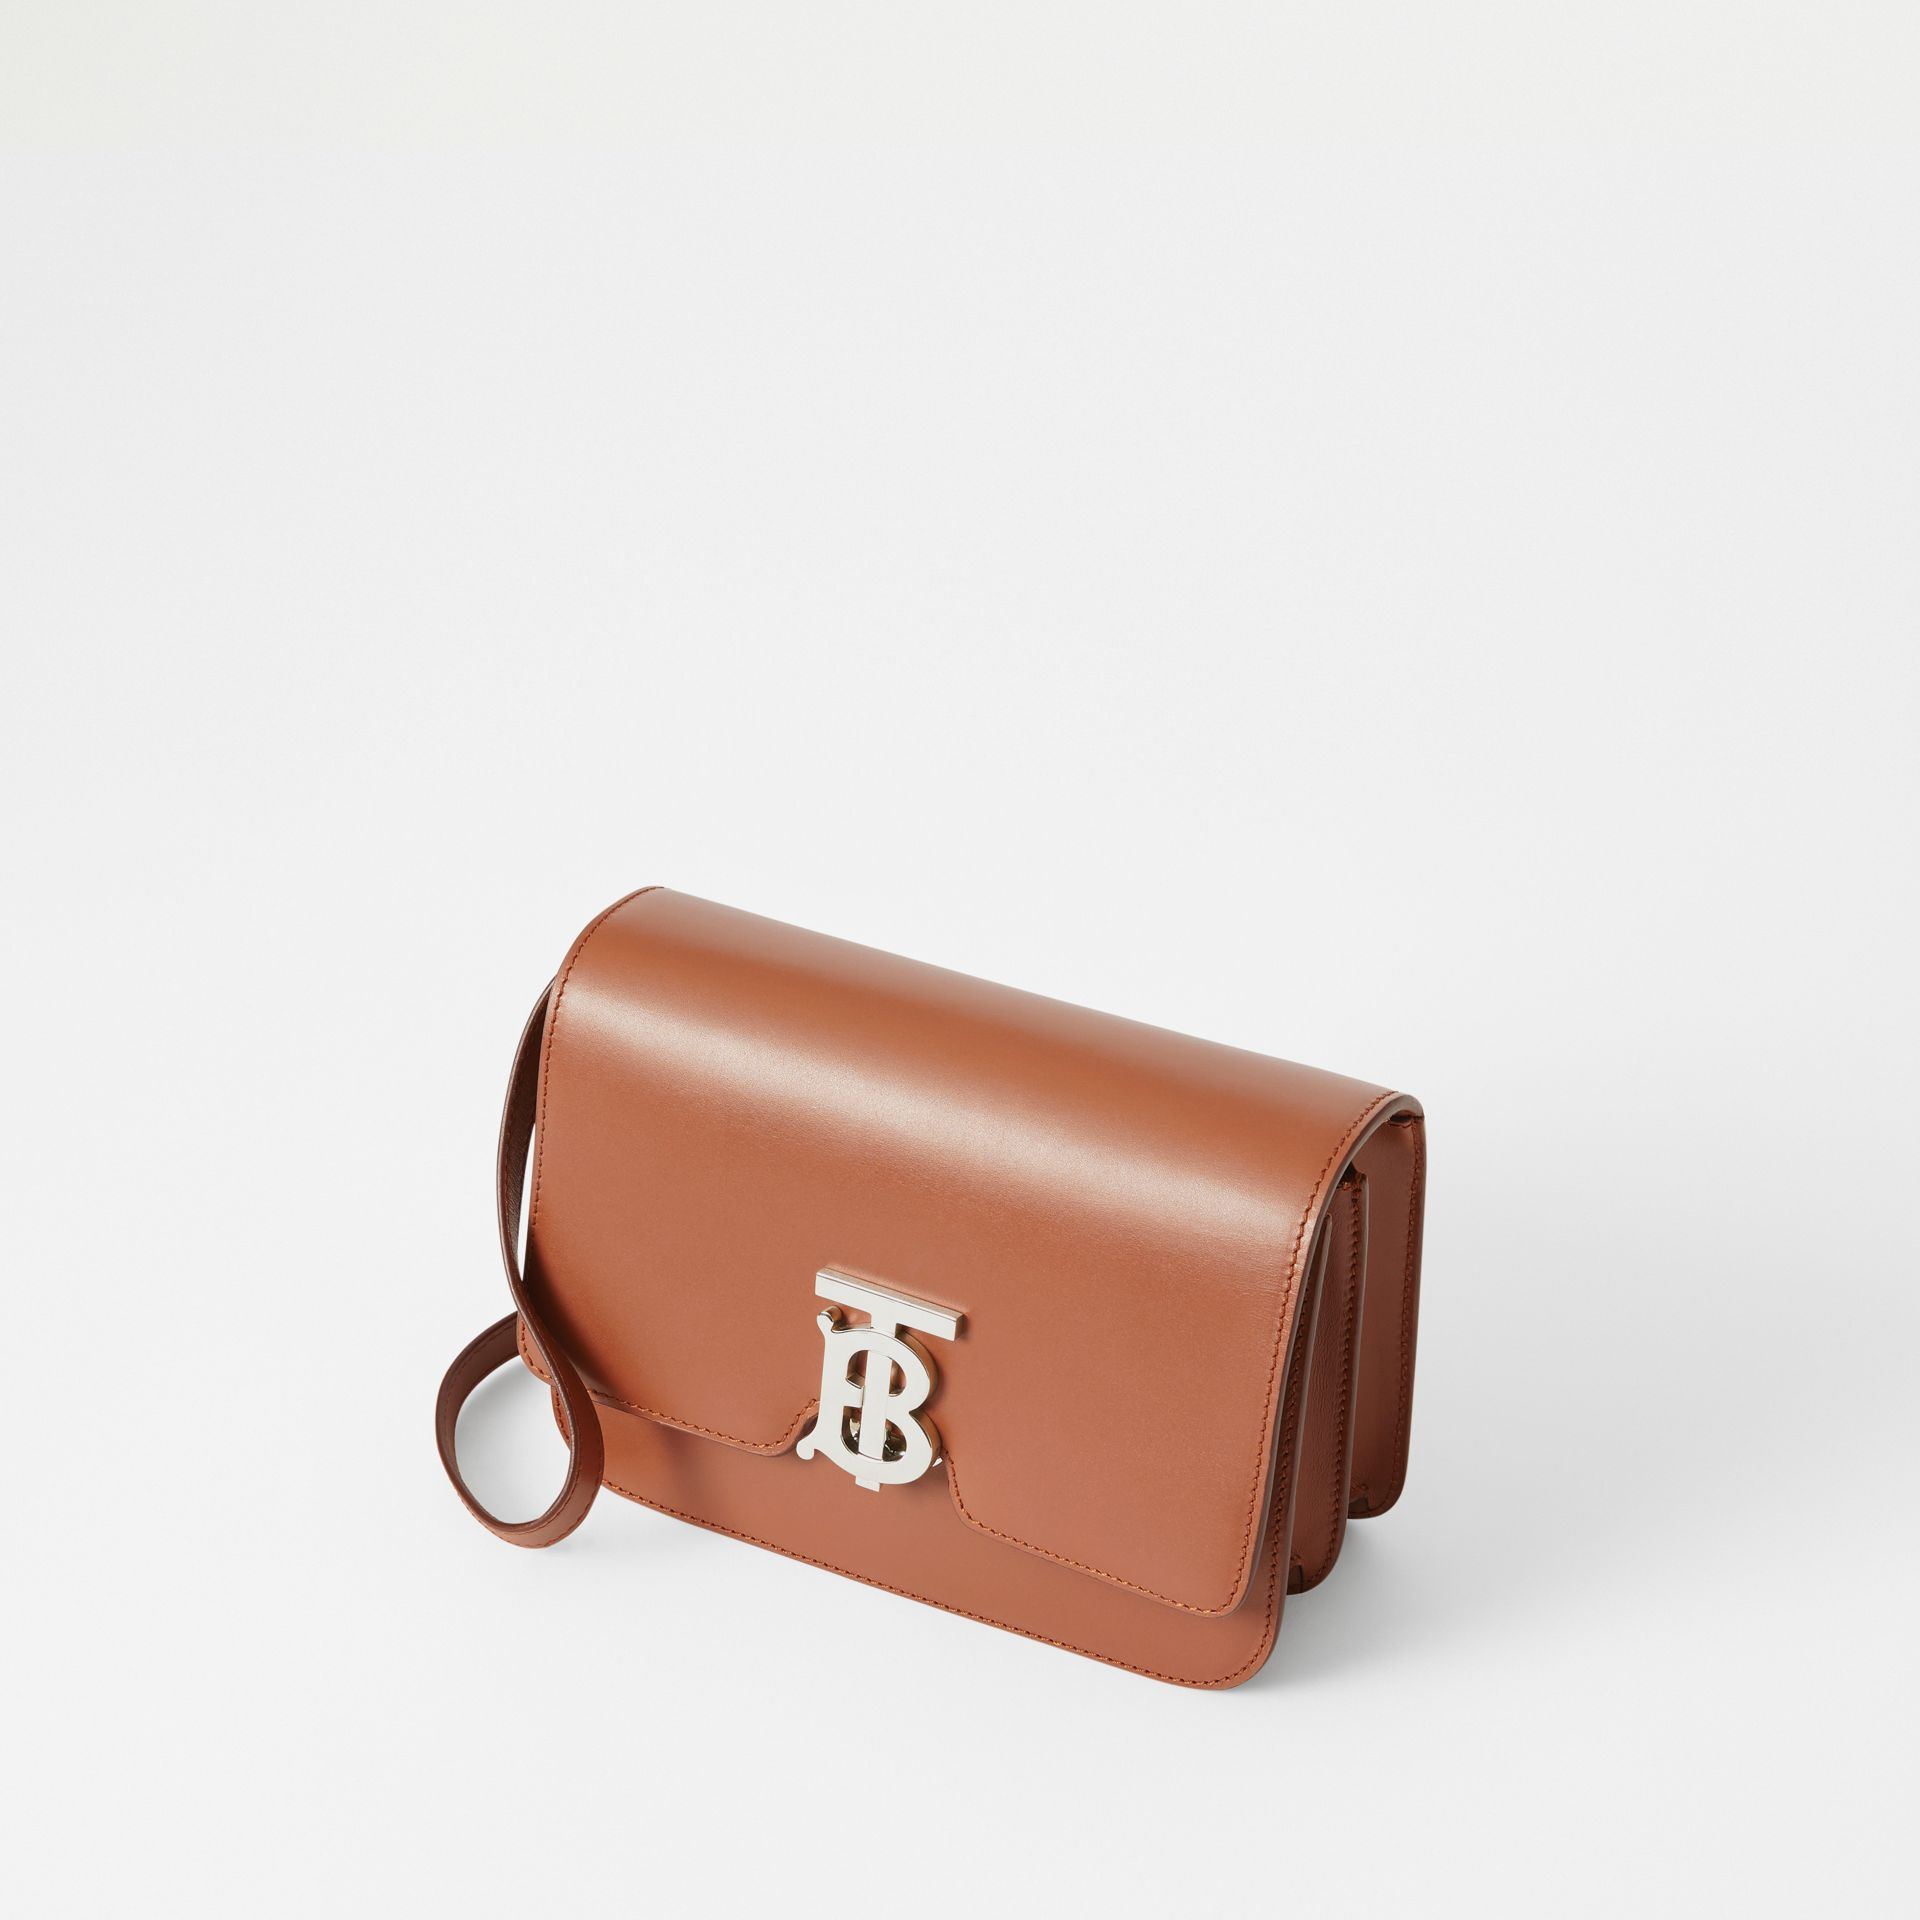 Small Leather TB Bag in Malt Brown - Women | Burberry Canada - gallery image 3